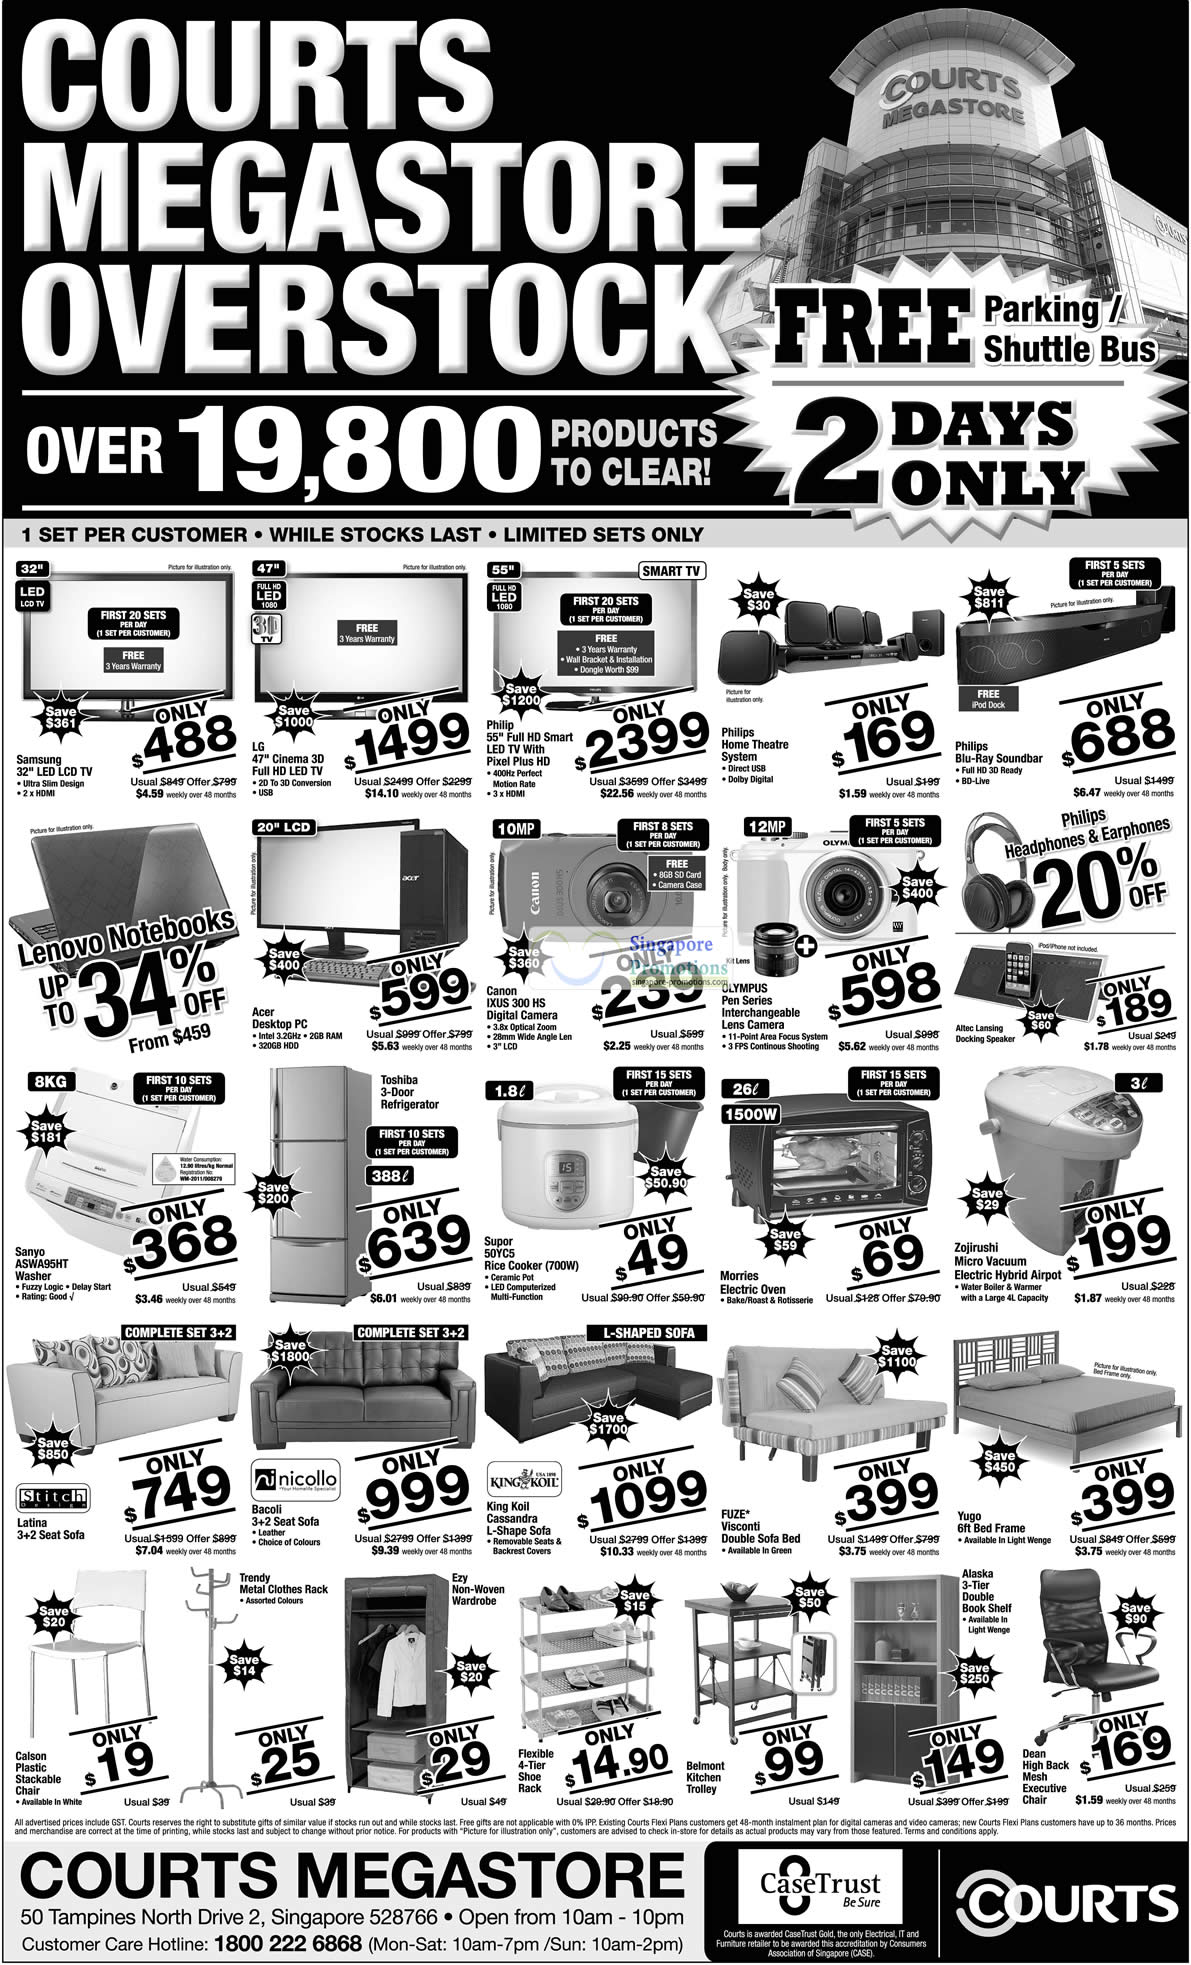 Canon IXUS 300 HS Digital camera, Supor 50YC5 Rice Cooker, Sanyo ASWA95HT Washing Machine, Stitch Design Latina Sofa, Nicollo Bacoli